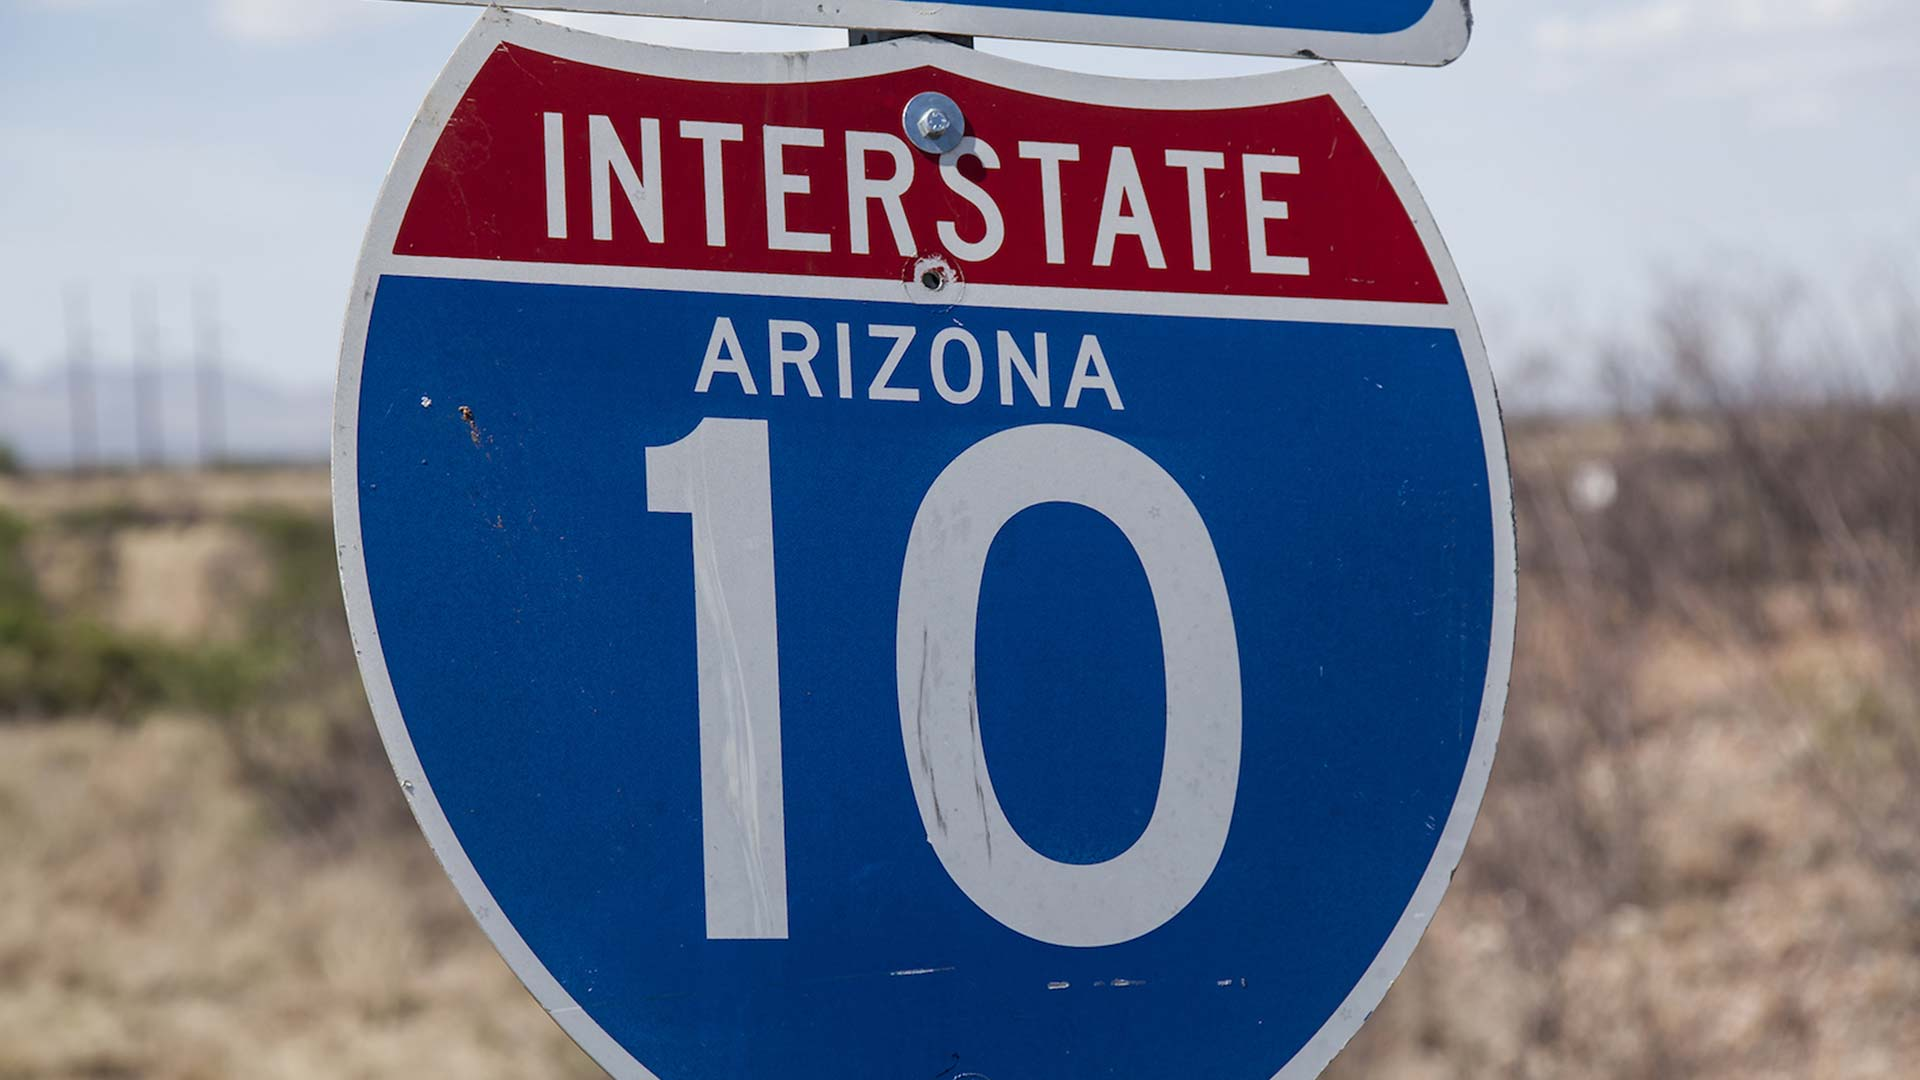 ADOT reports project widening of I-10 will relieve traffic in the short term, but won't keep up with projected growth.